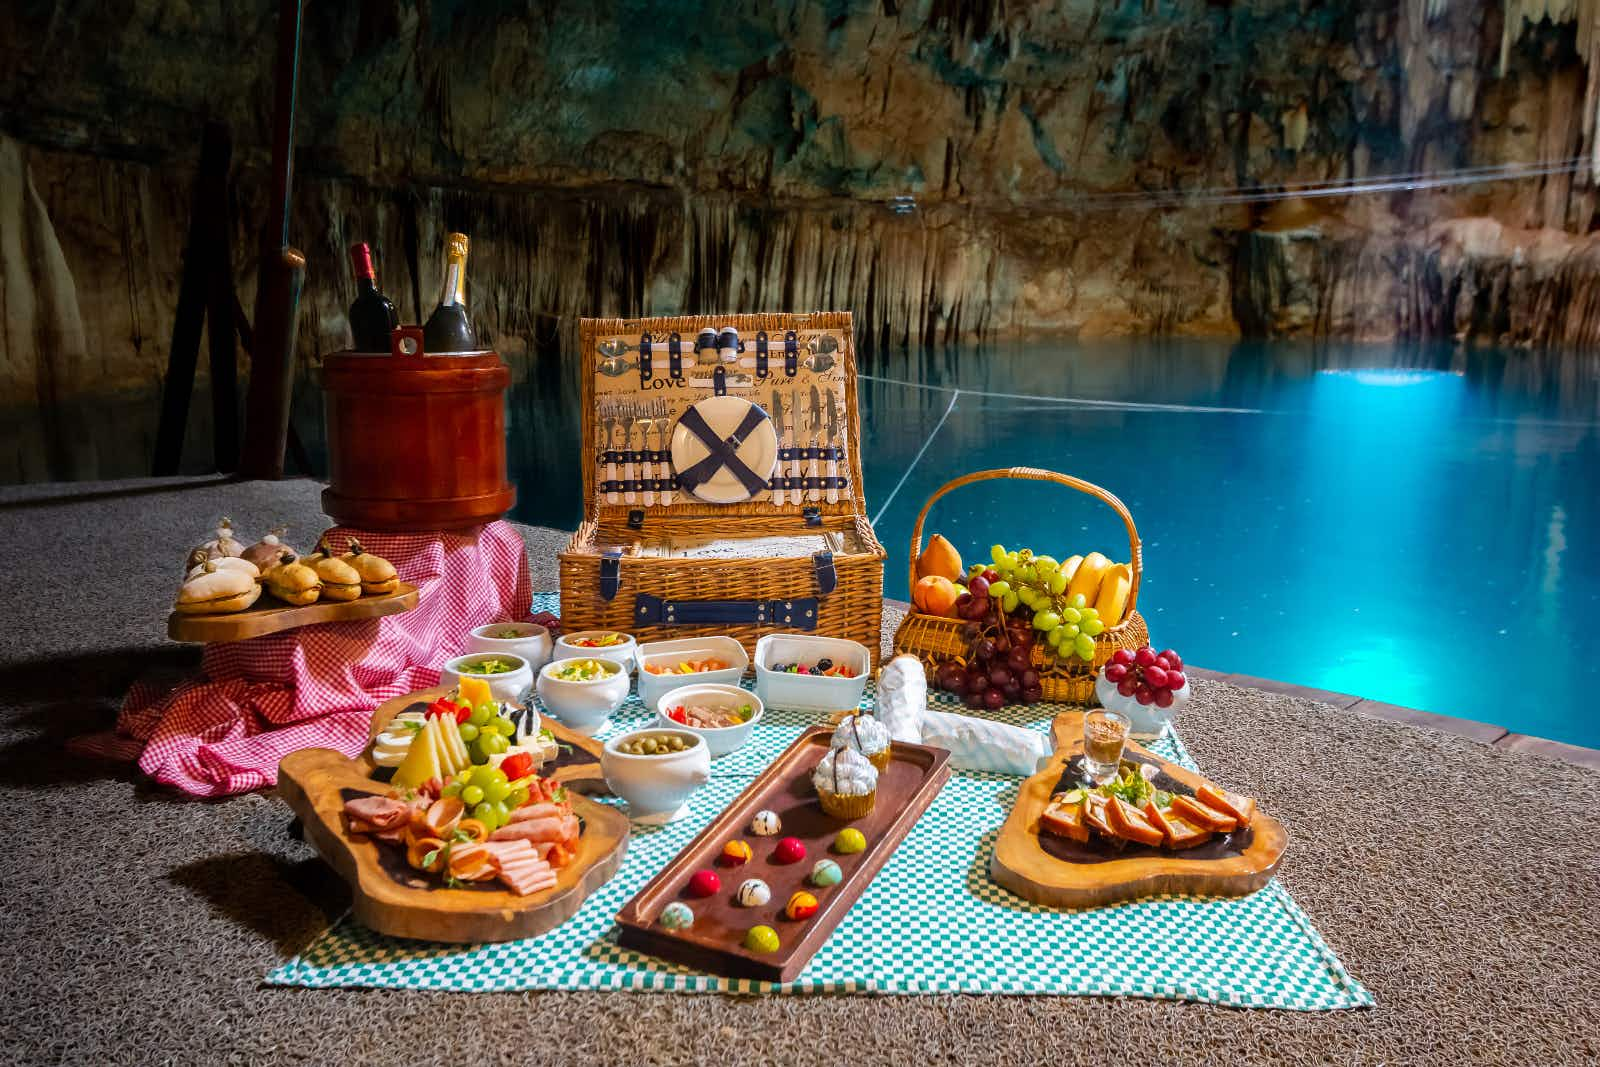 Head underground to wine and dine in a magical Mexican cenote in Playa del Carmen